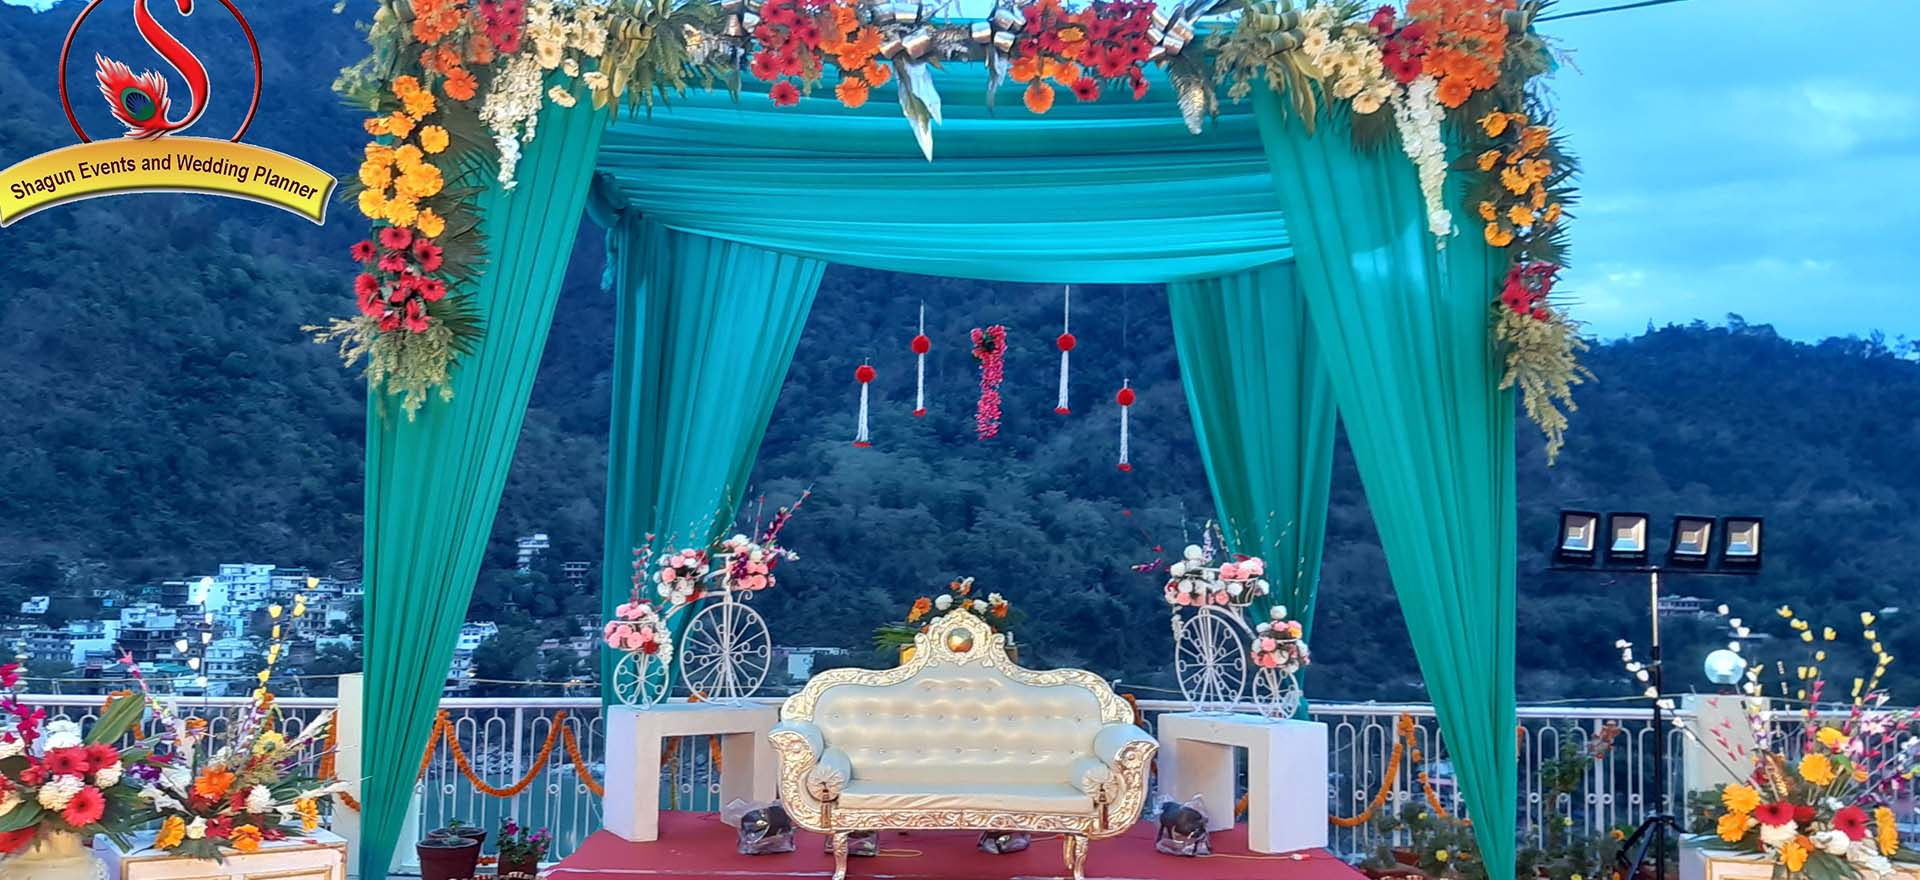 Mesmerizing venues for wedding & parties